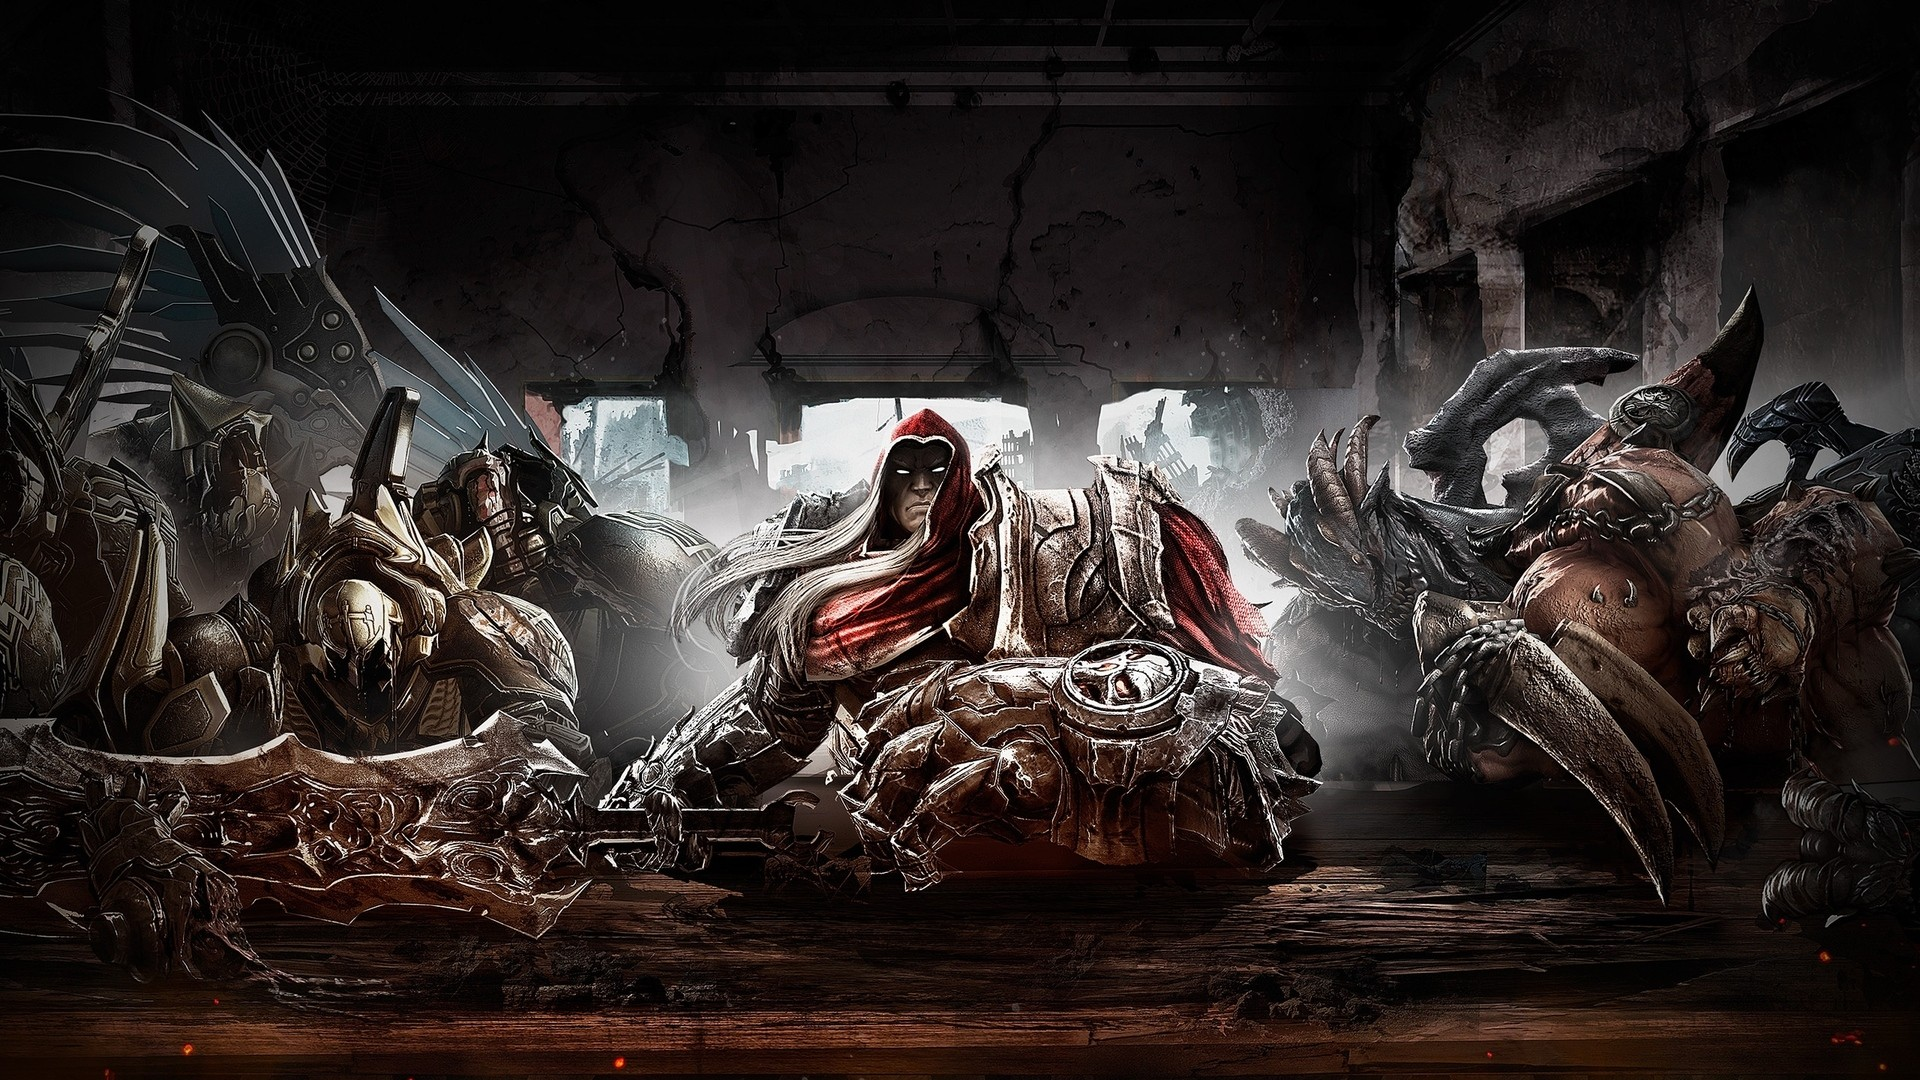 Fantasy Darksiders Wallpaper 1920x1080 Fantasy Darksiders 1920x1080